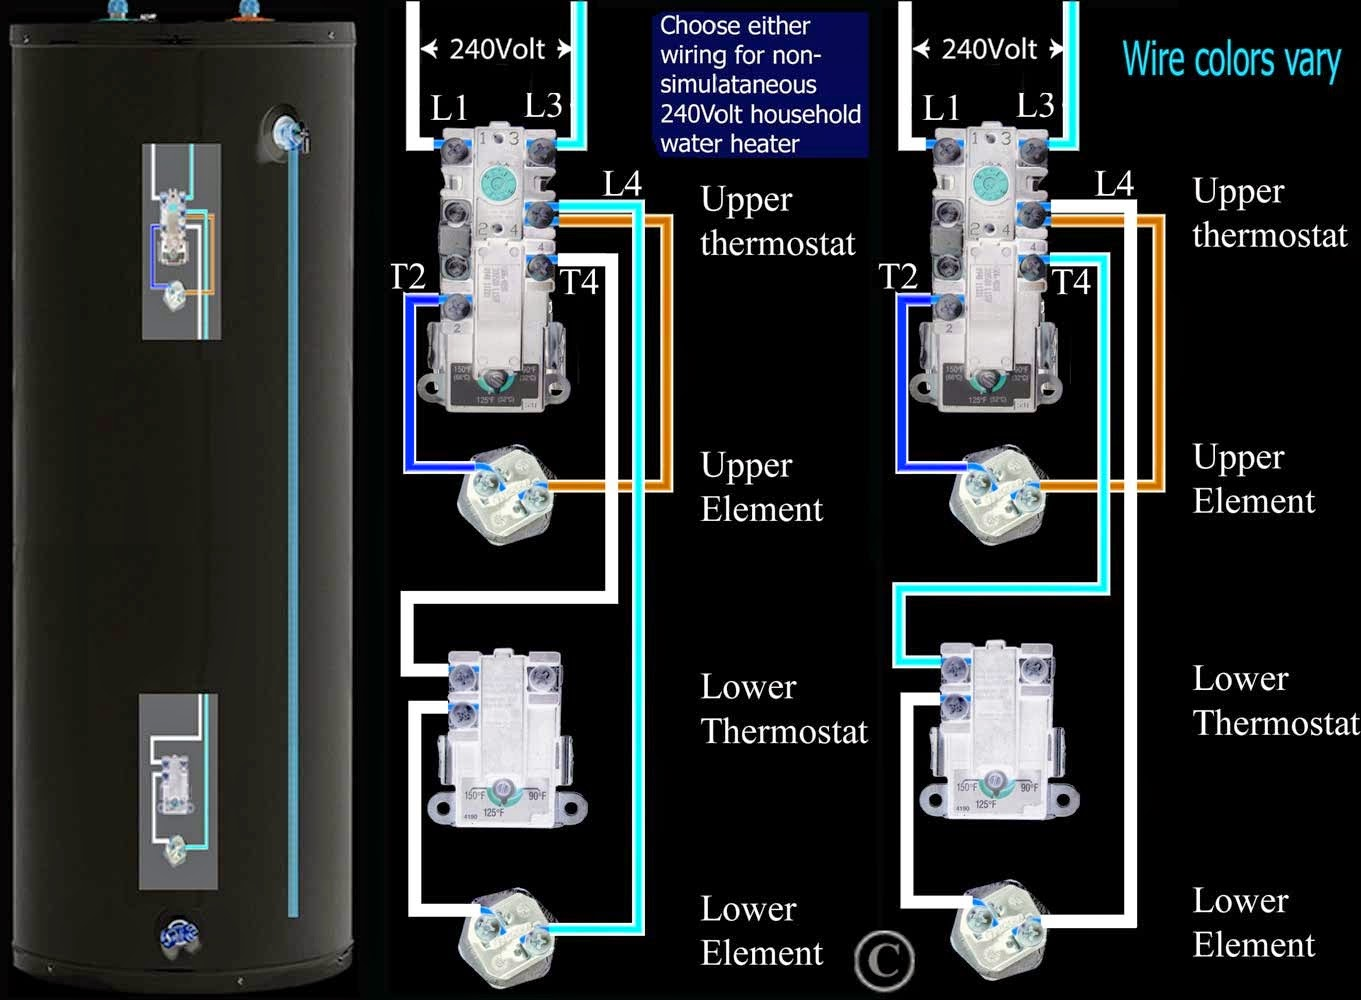 Electric work how to figure voltsamps watts for residential water how to figure voltsamps watts for residential water heater geenschuldenfo Choice Image